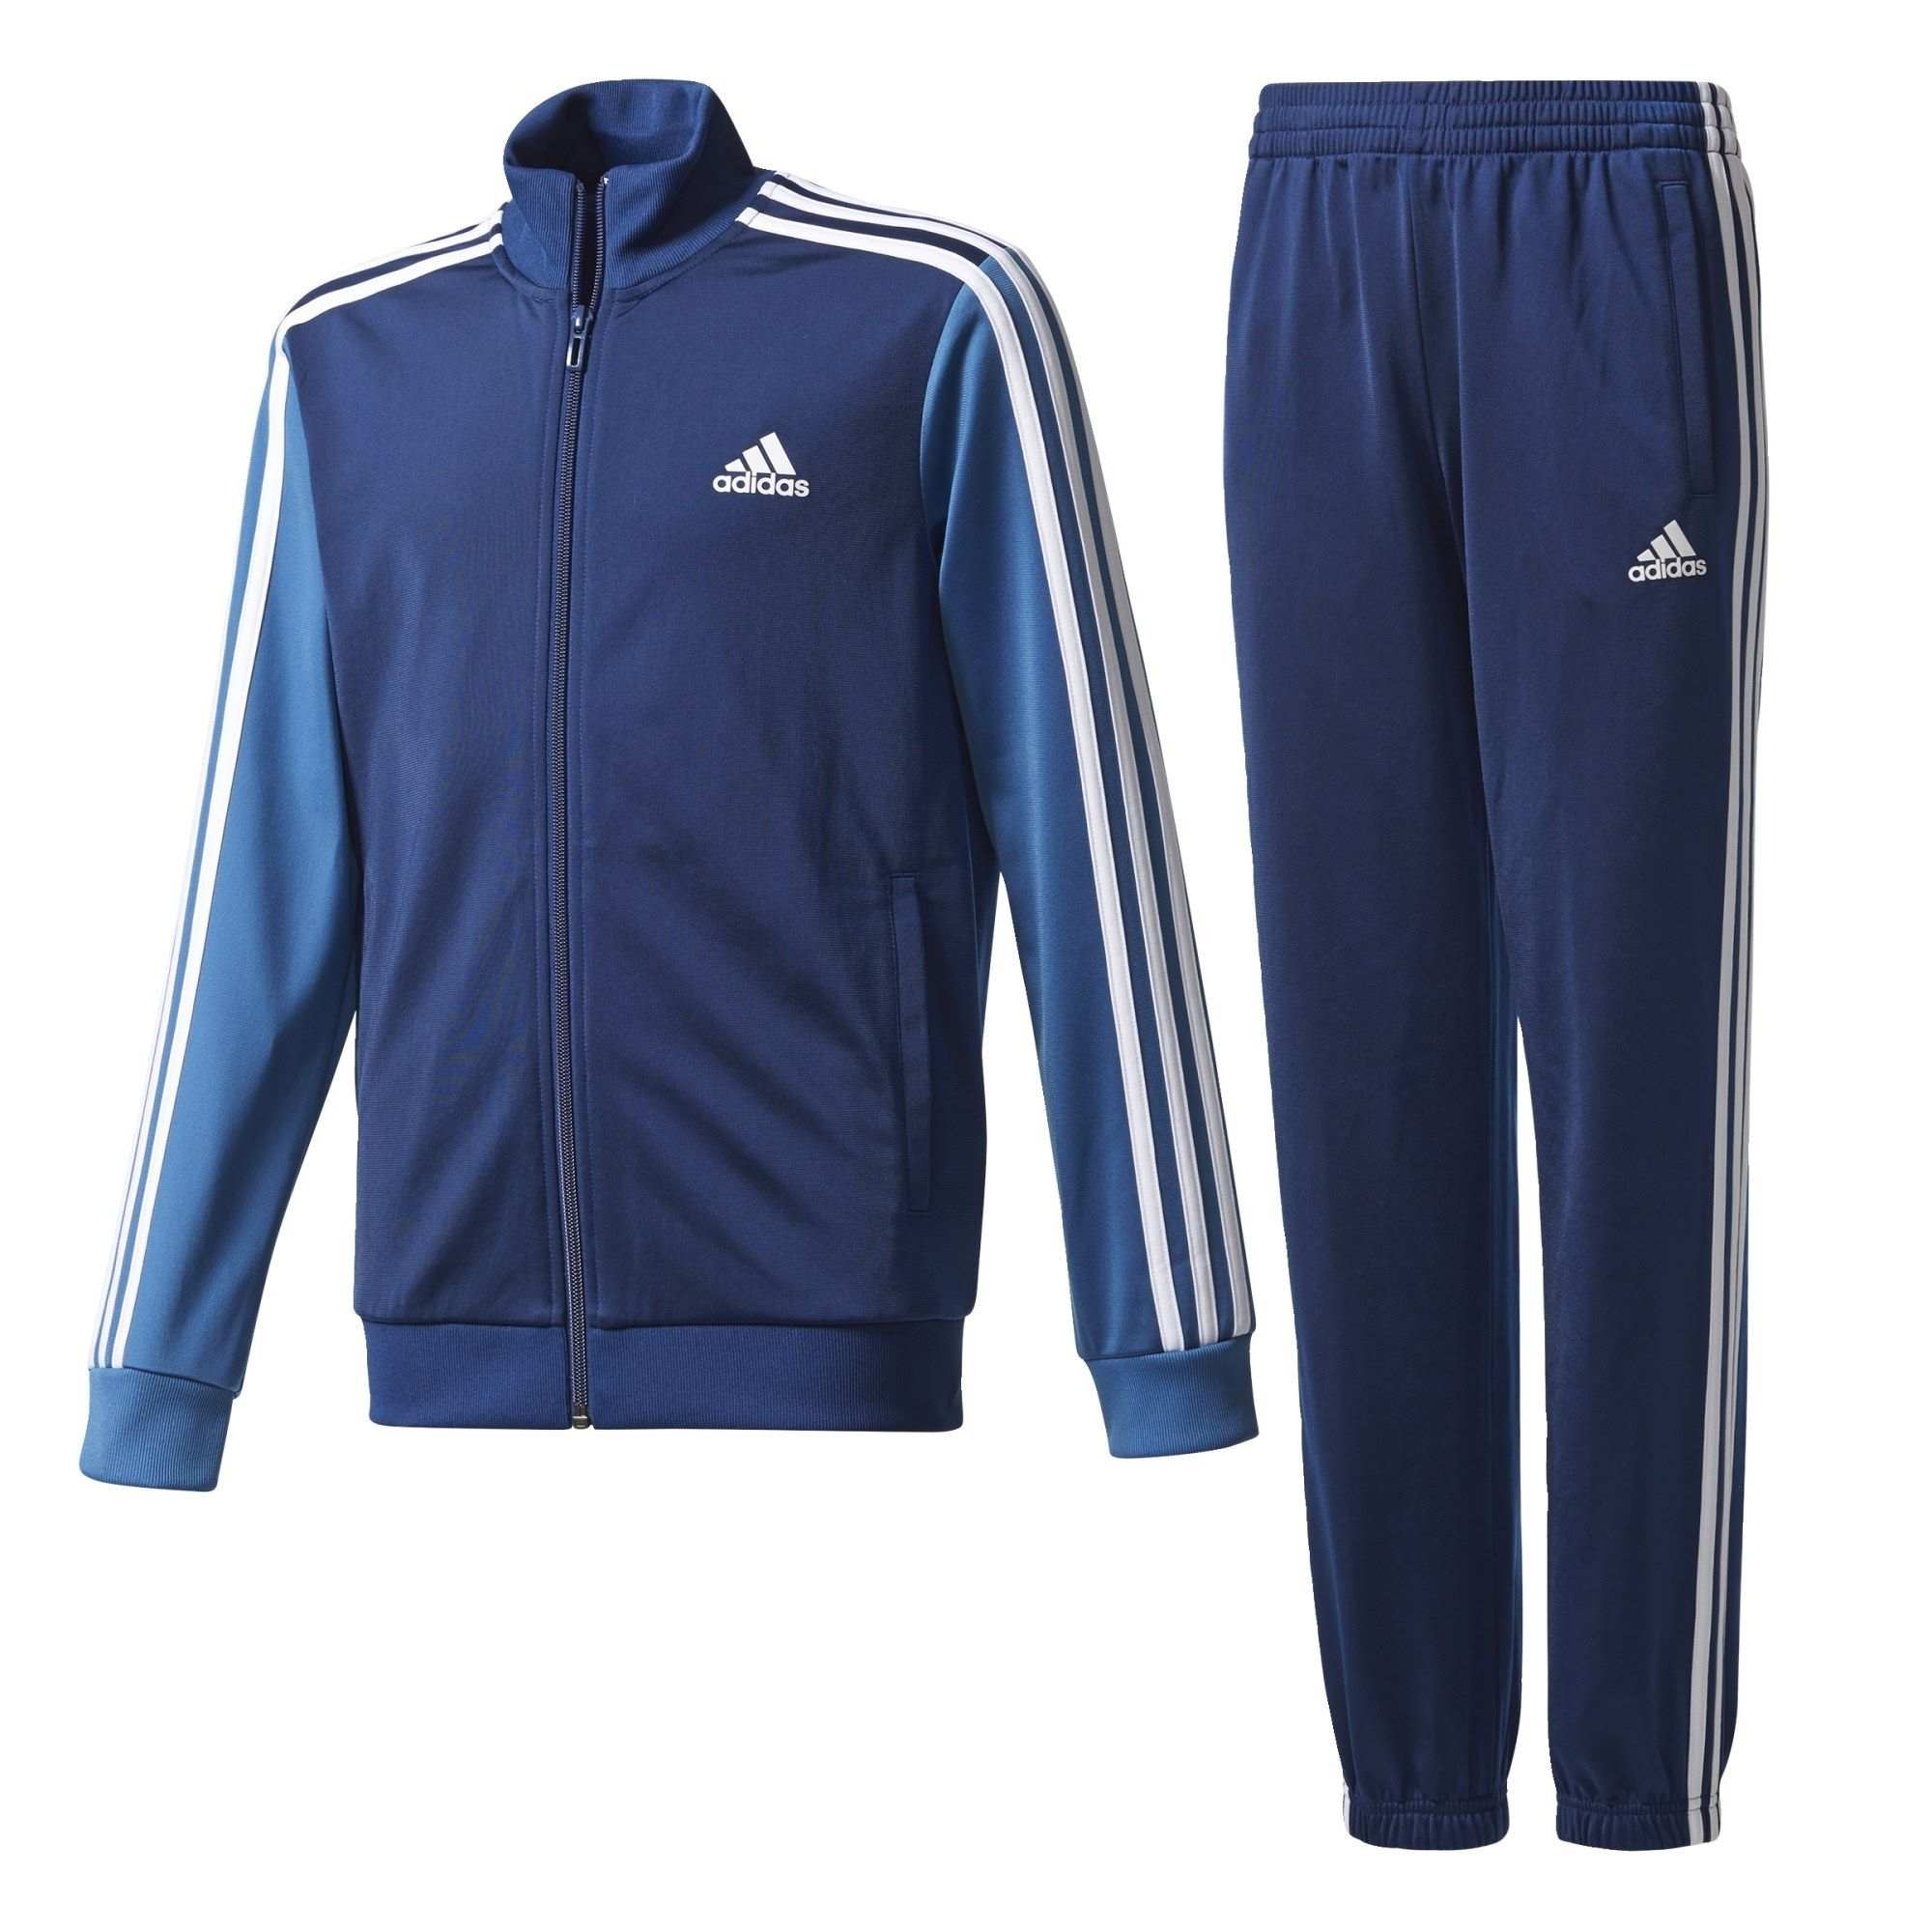 Adidas Tibero Ts Junior voetbal trainingspak